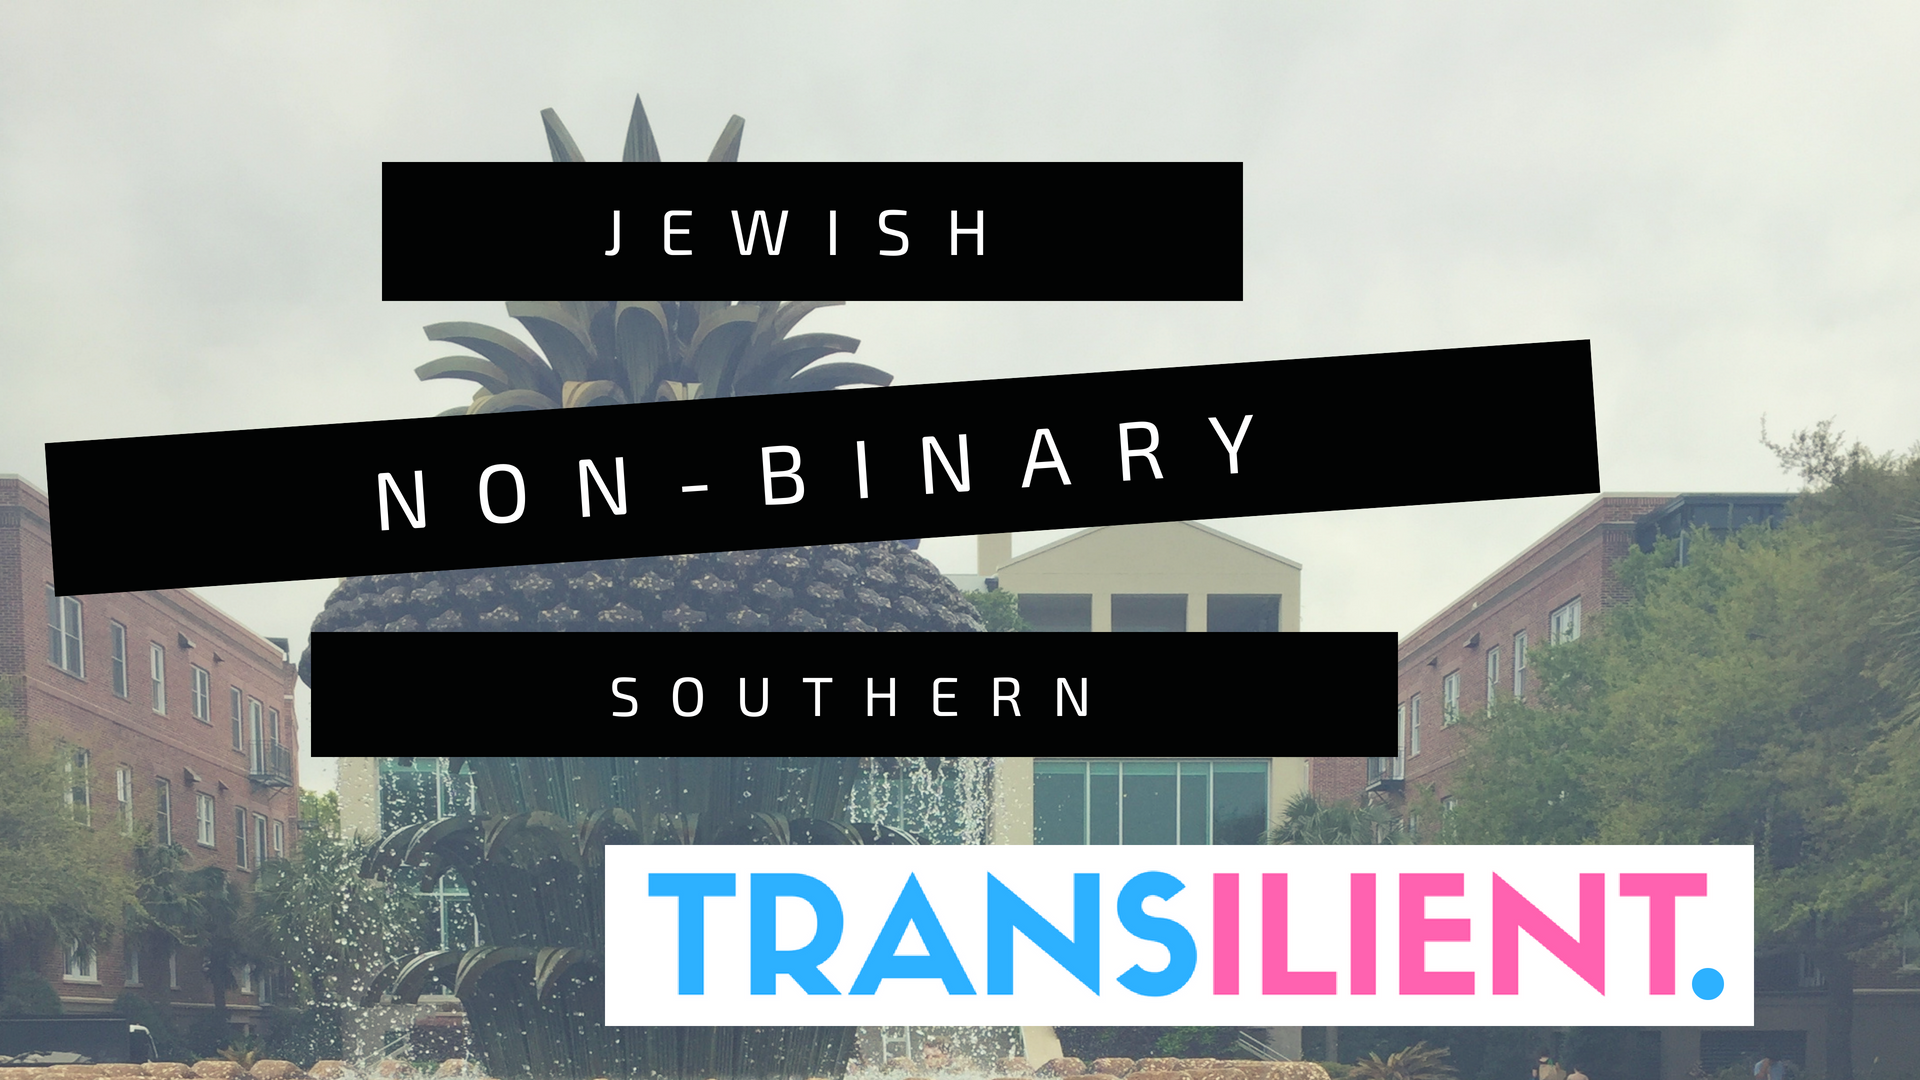 1 - jewish nb tansilient.png